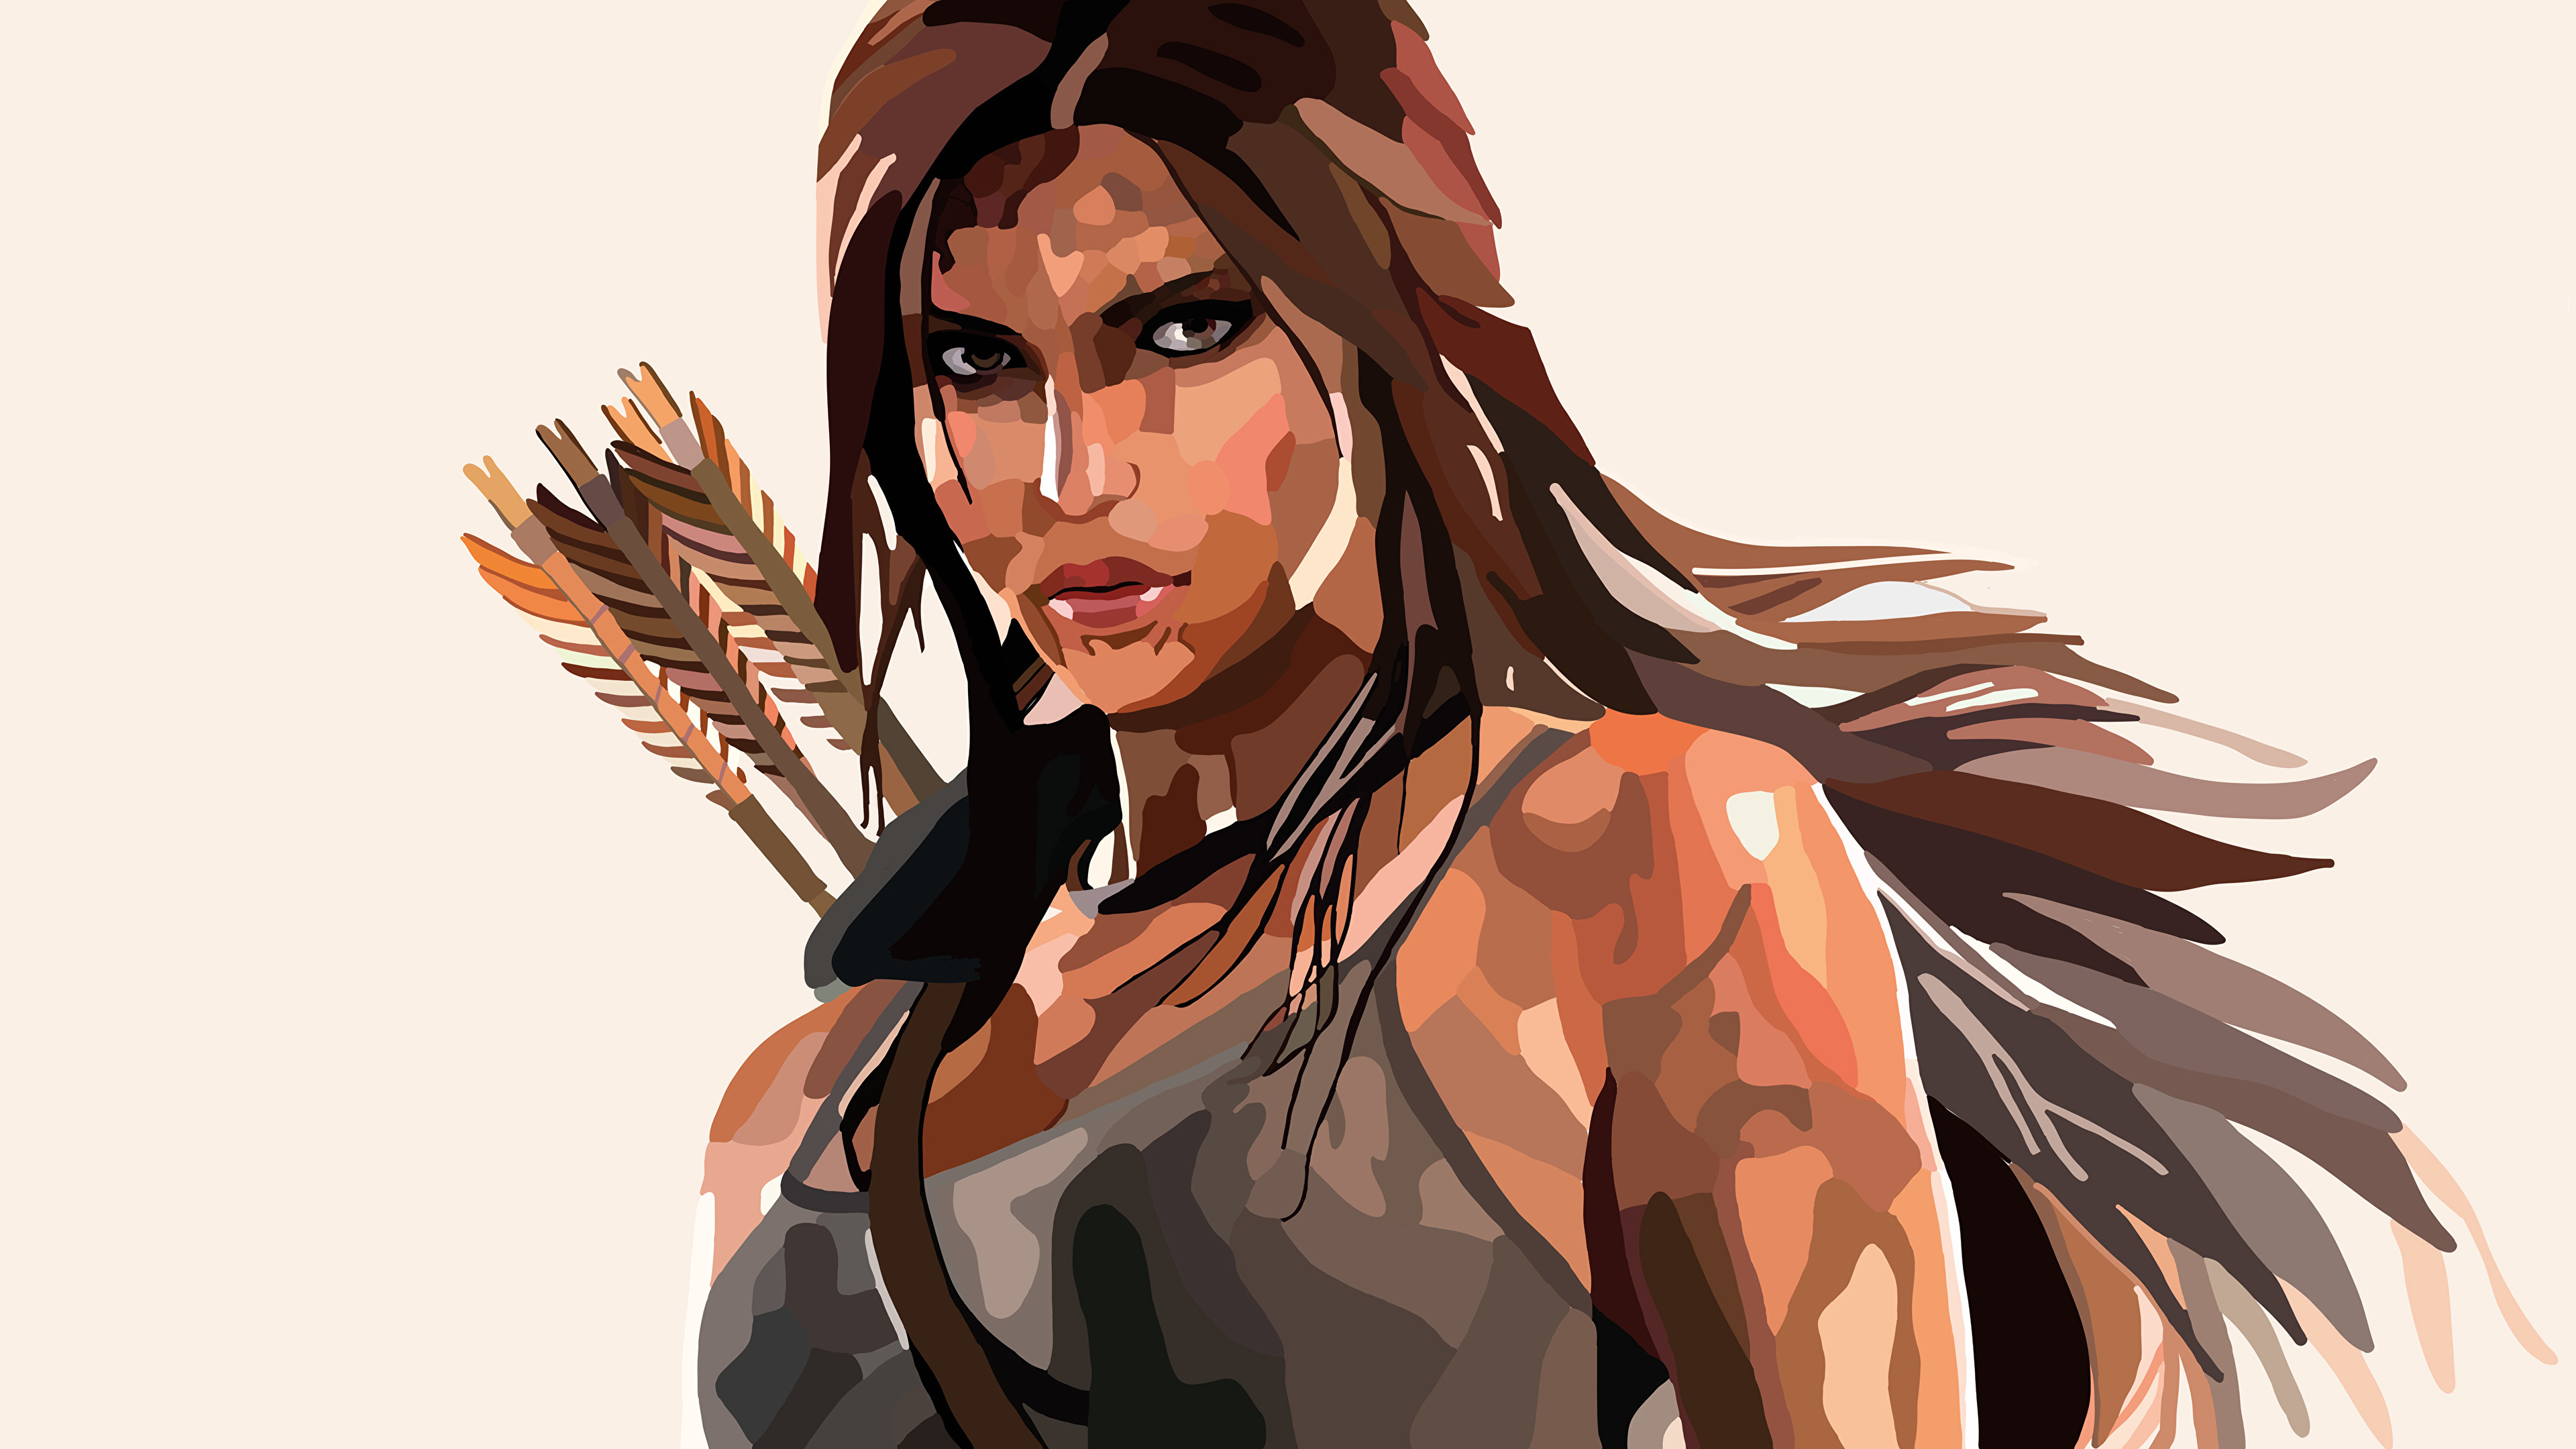 c2558a8eb5 Image Rise of the Tomb Raider Lara Croft Girls Games Vector Graphics  3840x2160 young woman vdeo